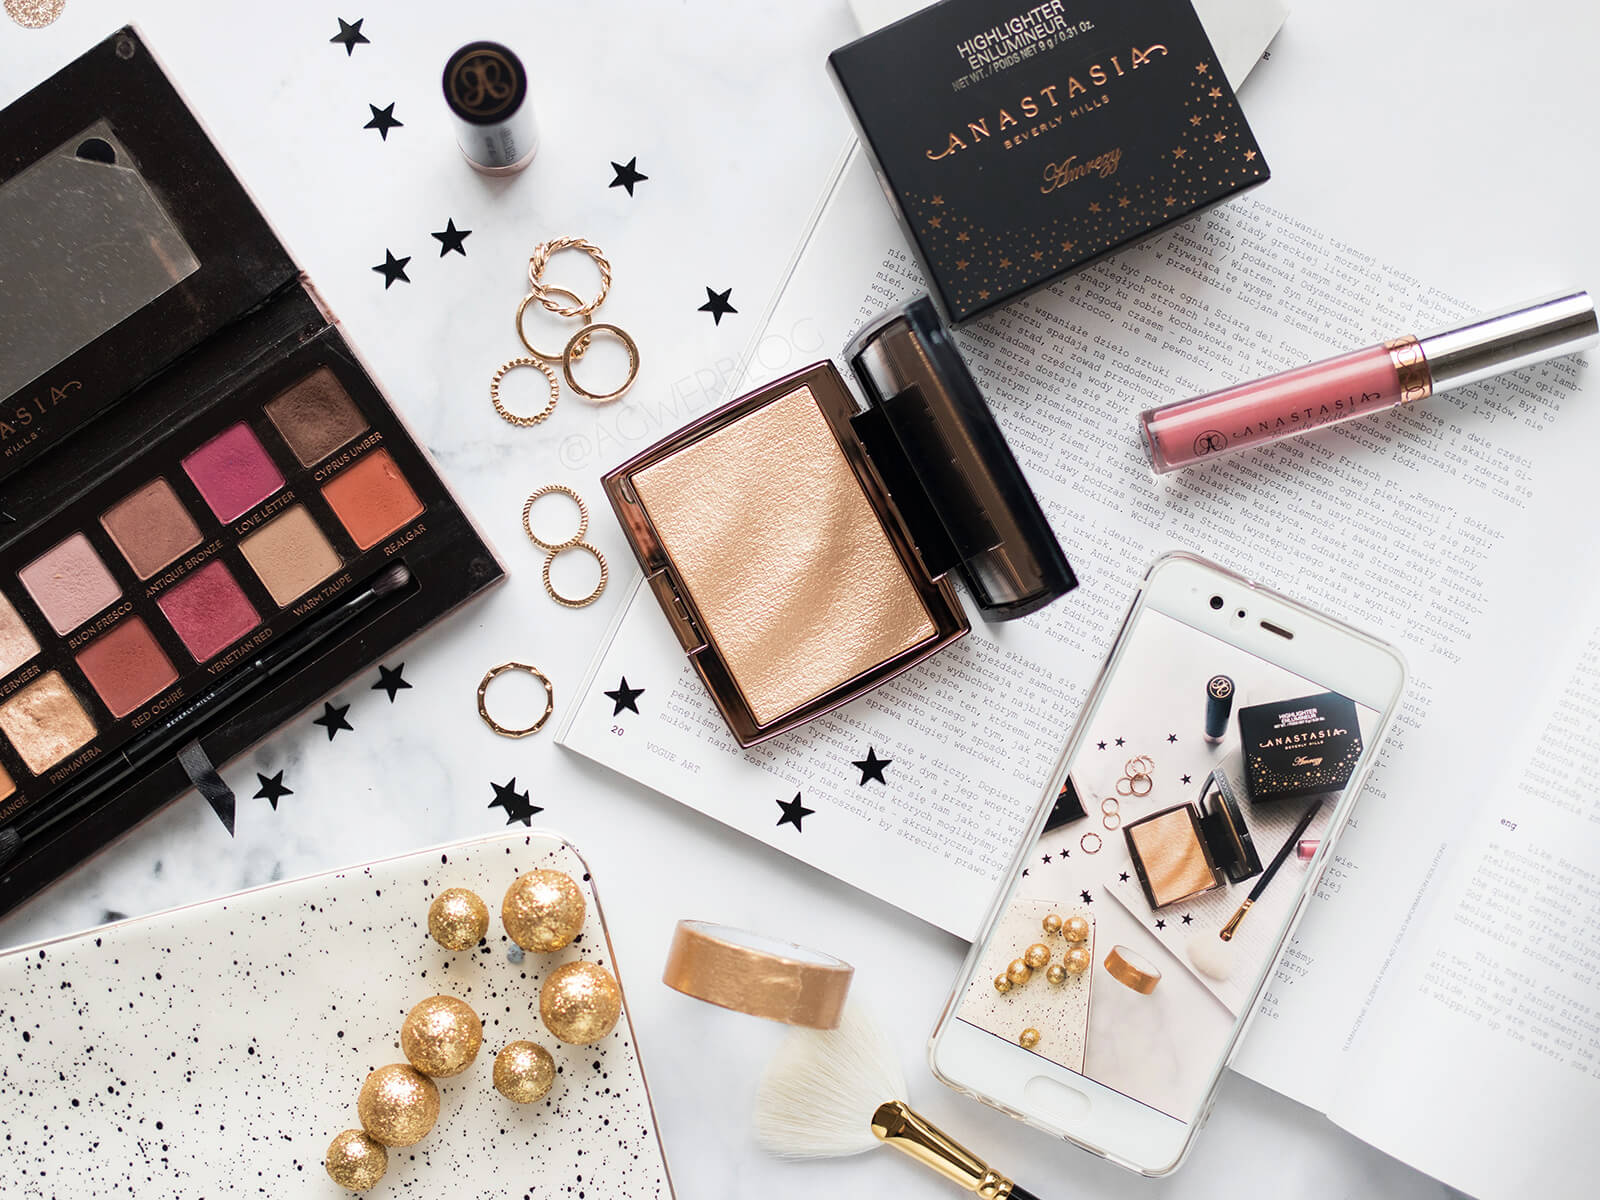 Anastasia Beverly Hills Amrezy – must have?